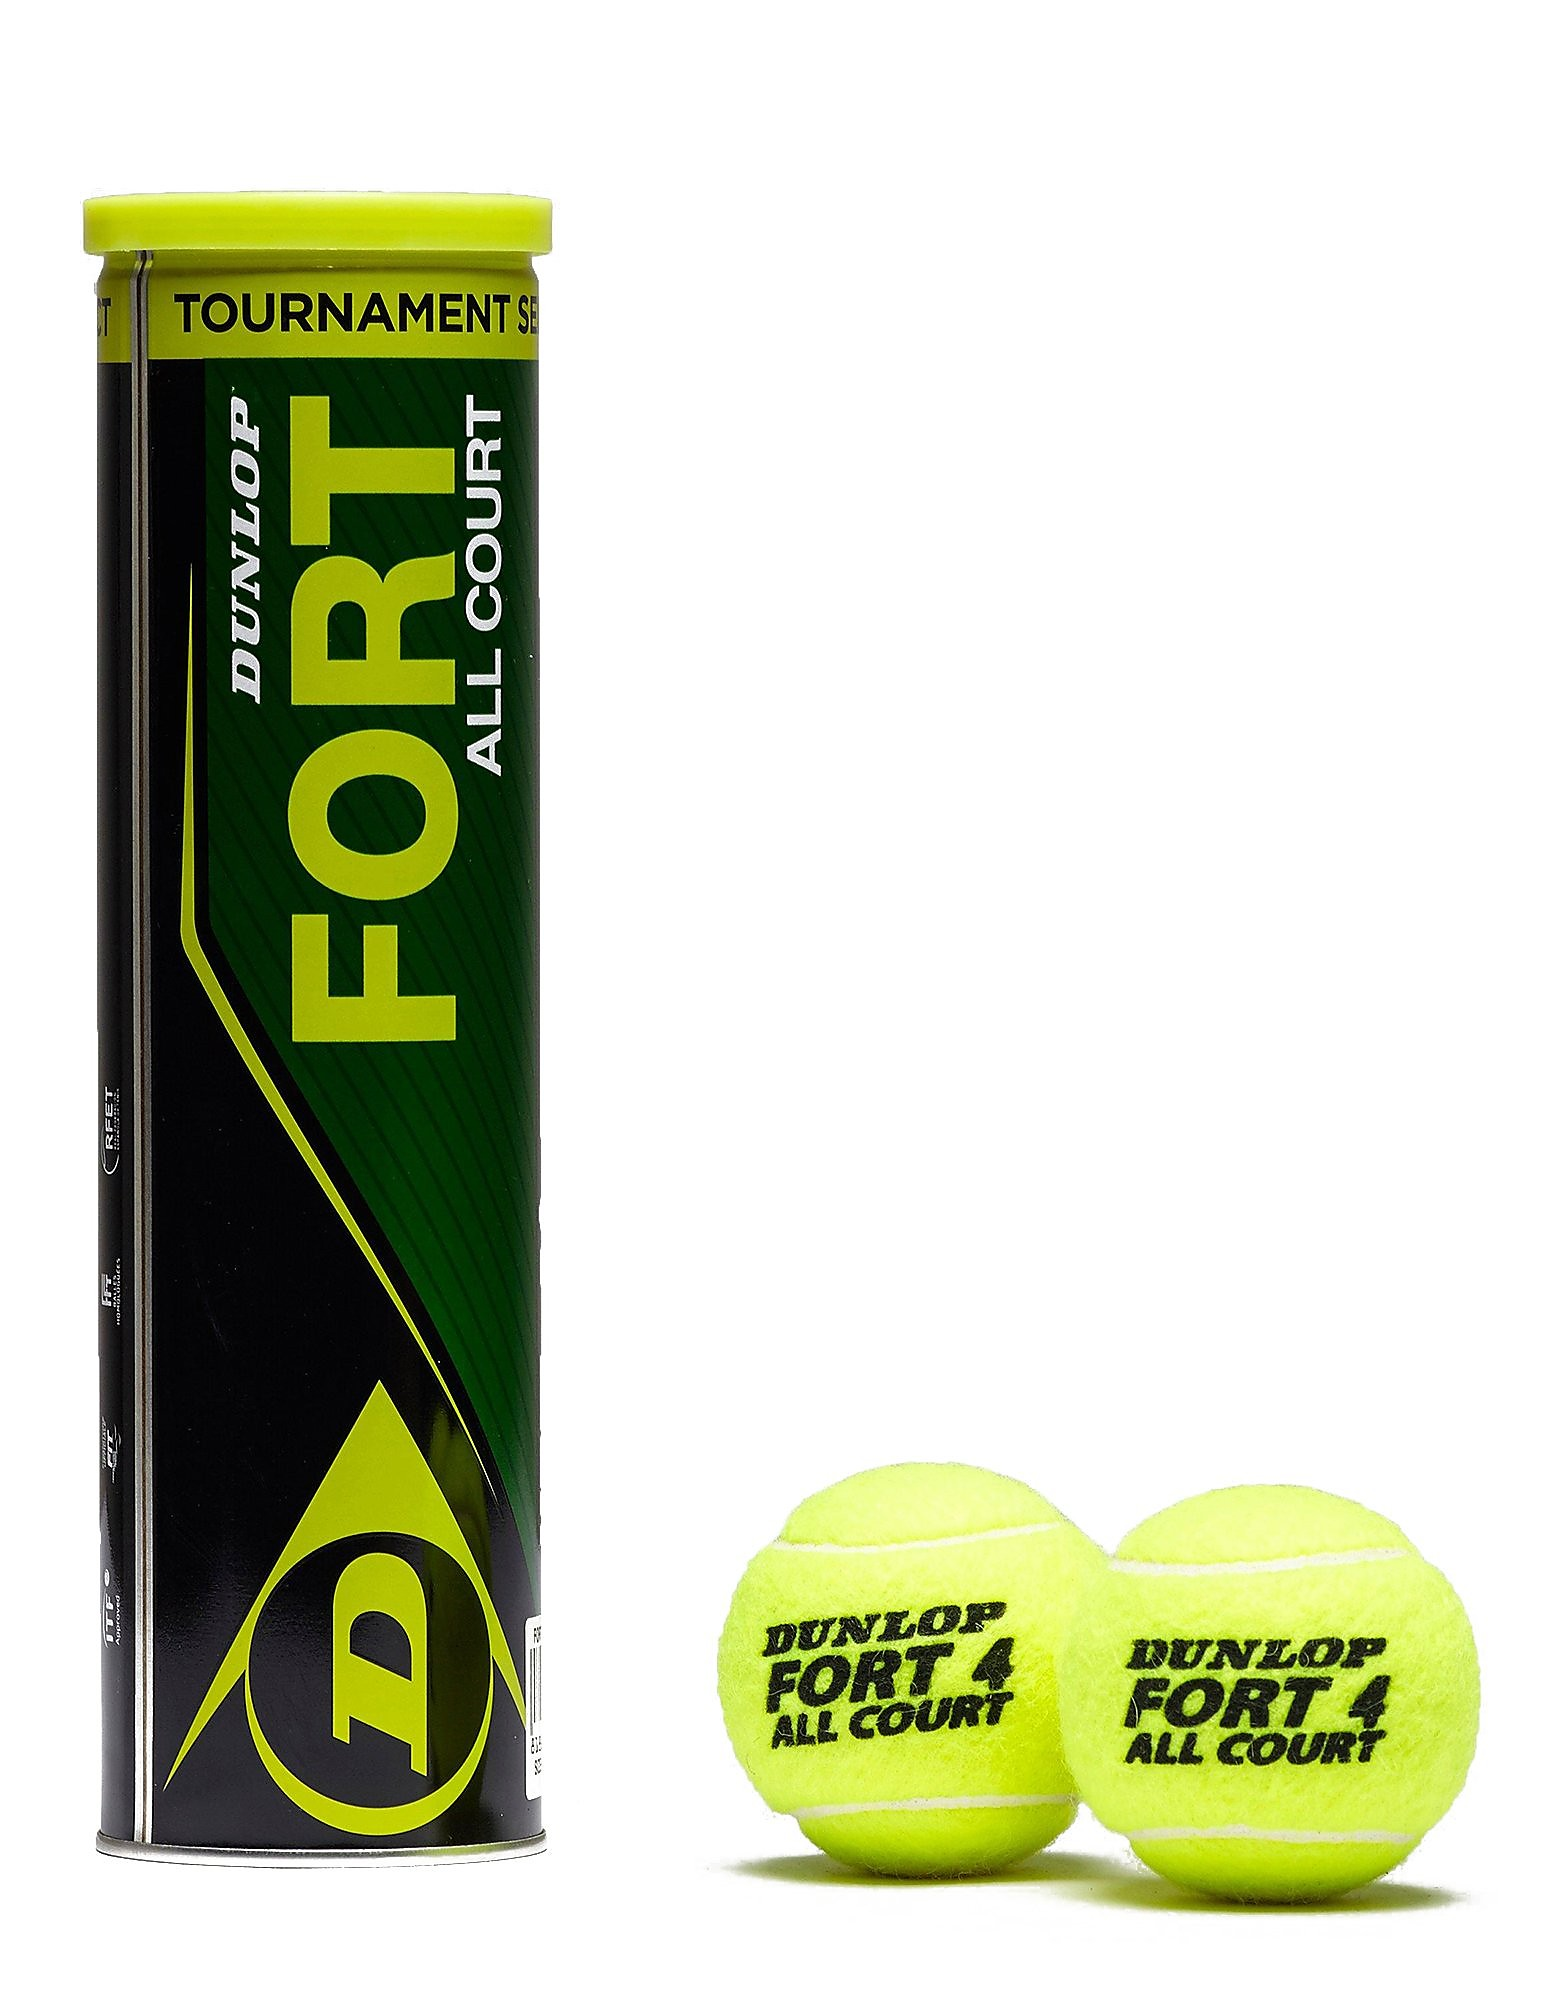 Dunlop Fort All Court Tennis Balls 4 Balls